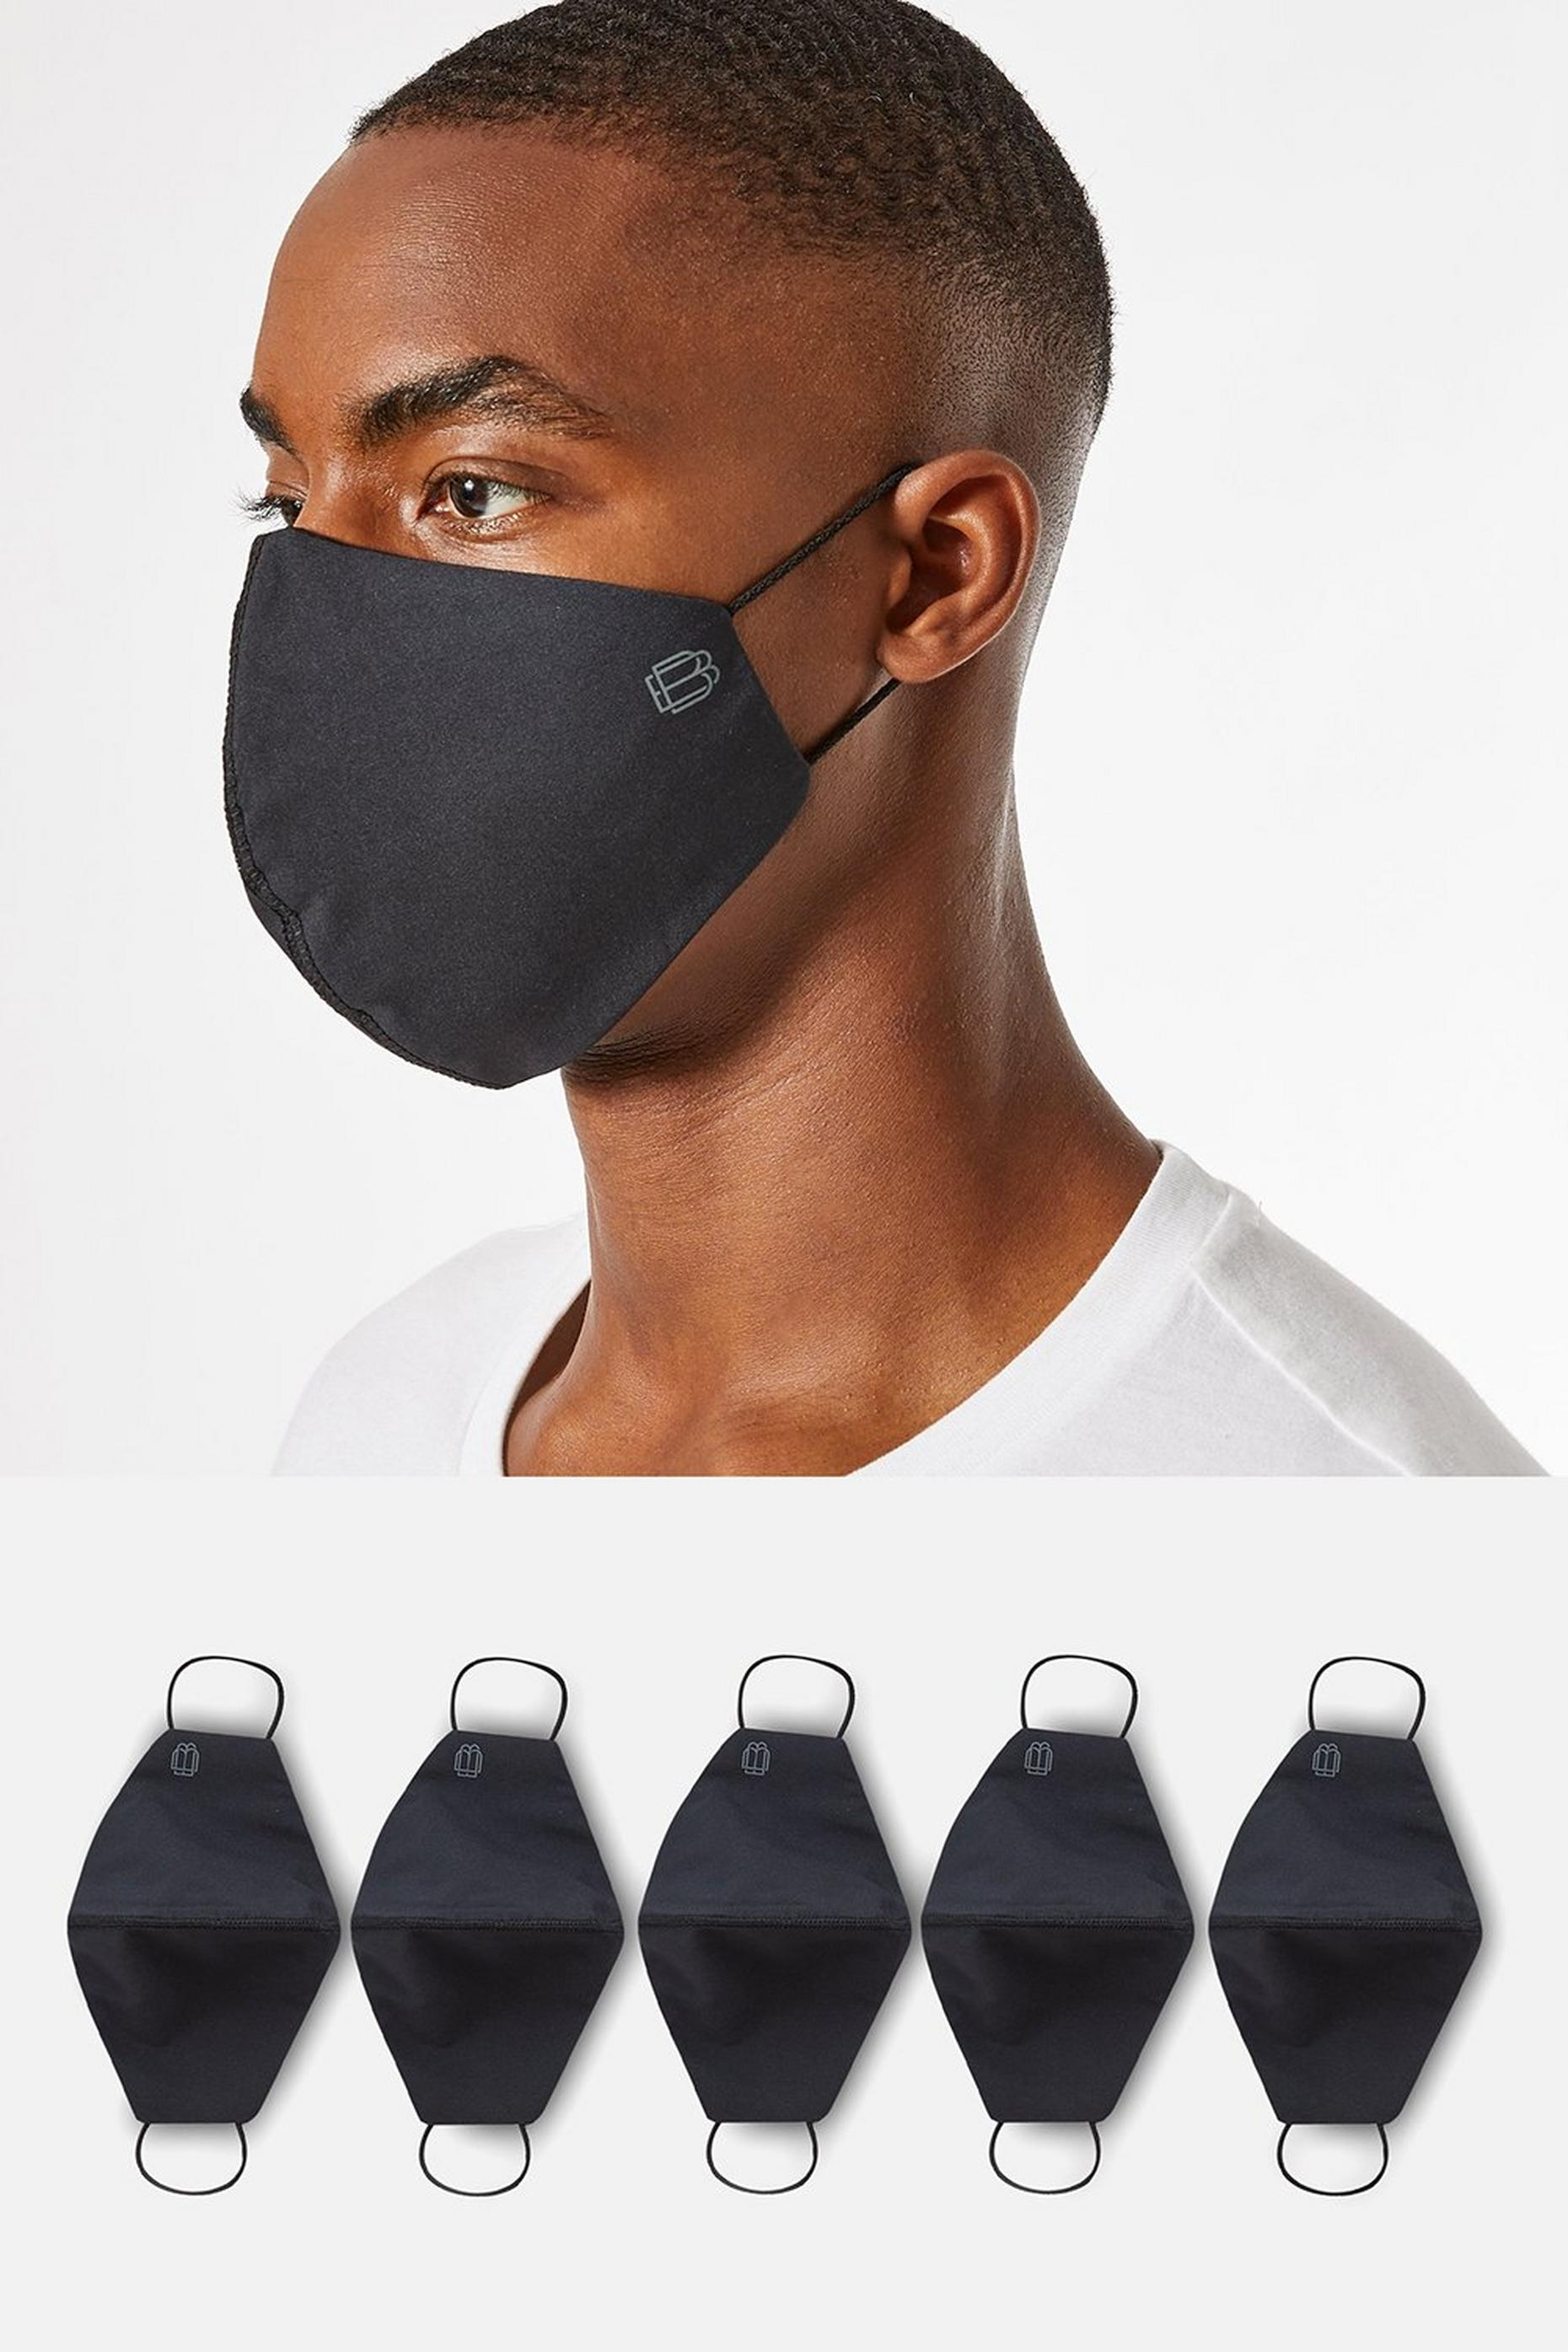 5 Pack Black Reusable Face Coverings